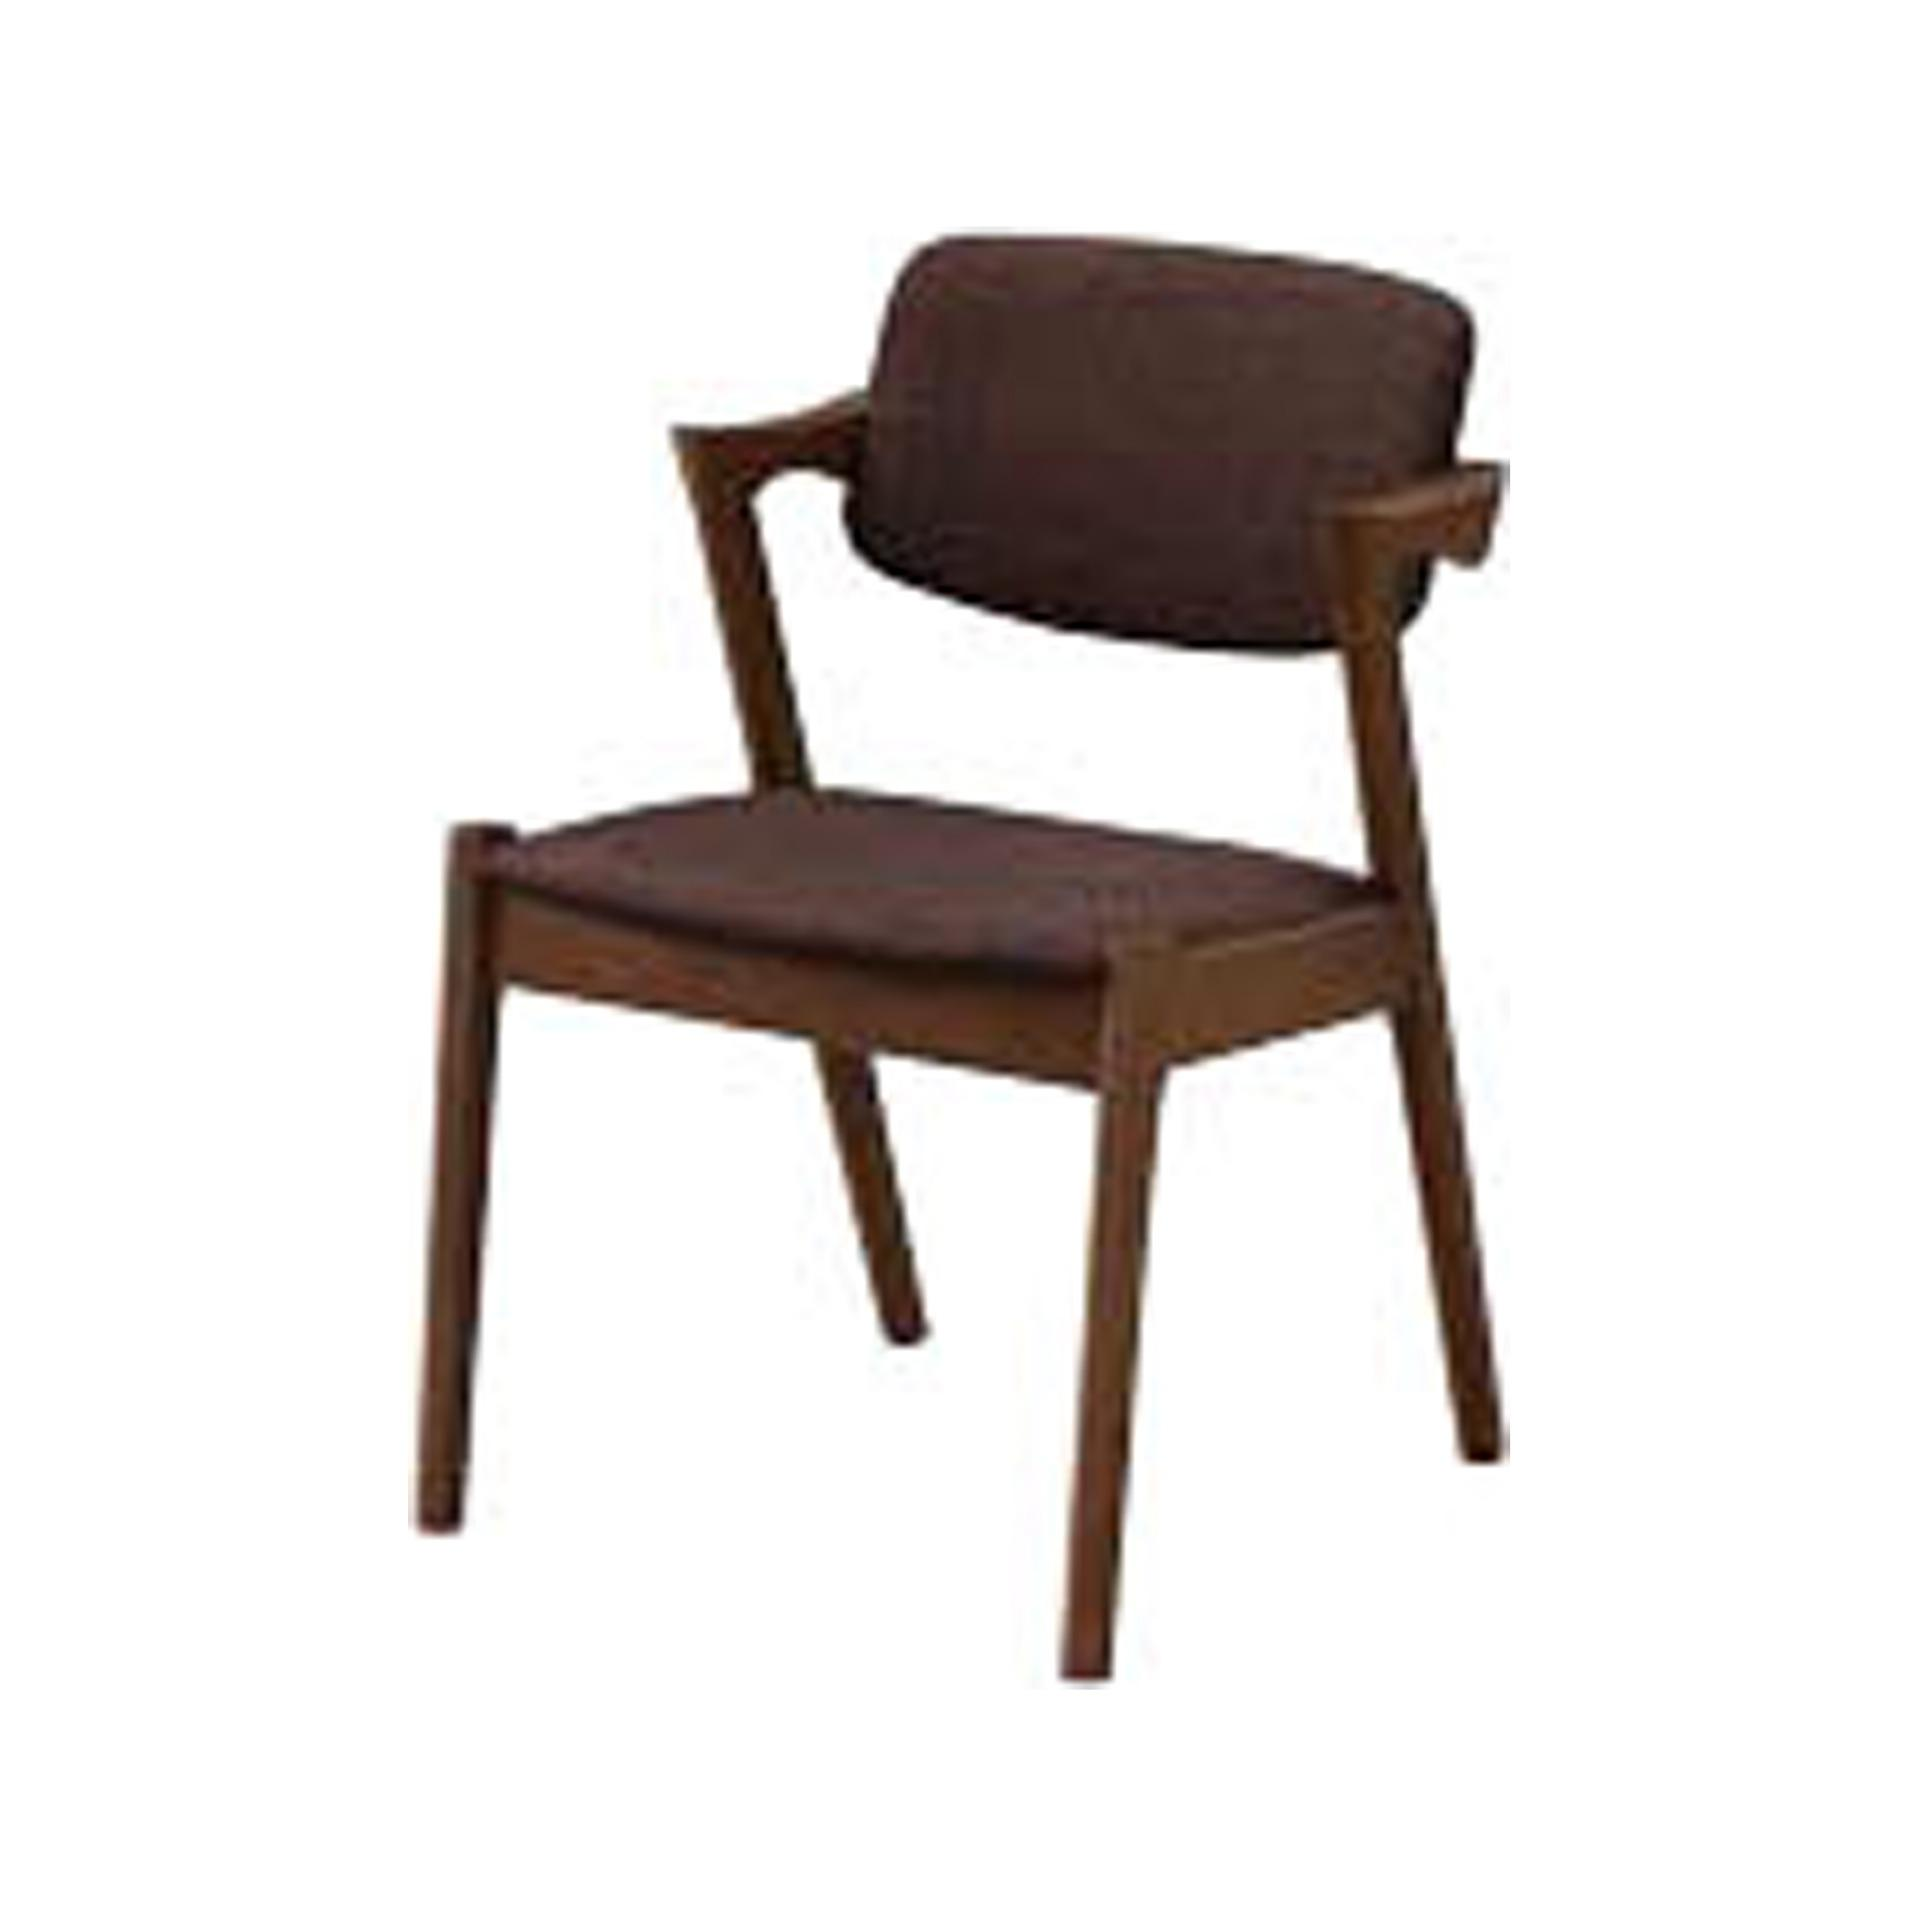 Lore Dining Chairs_Set of 2 (FREE DELIVERY)(FREE ASSEMBLY)